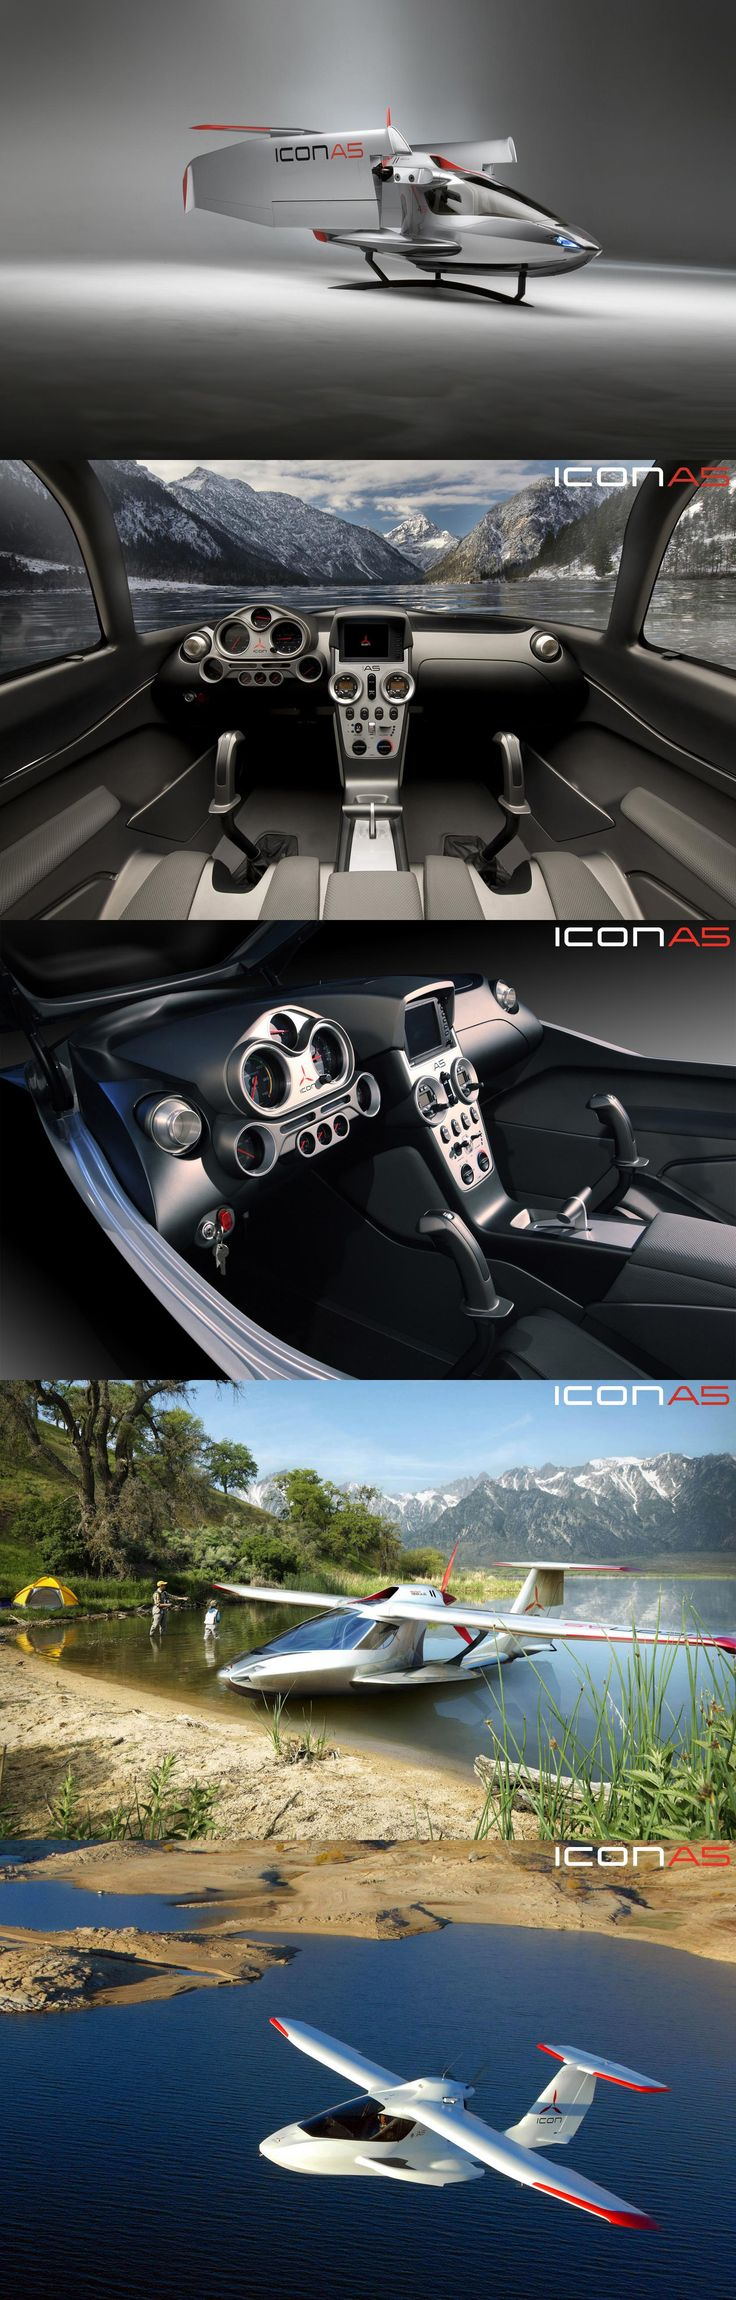 Icon A5! My answer to going where i want to go.